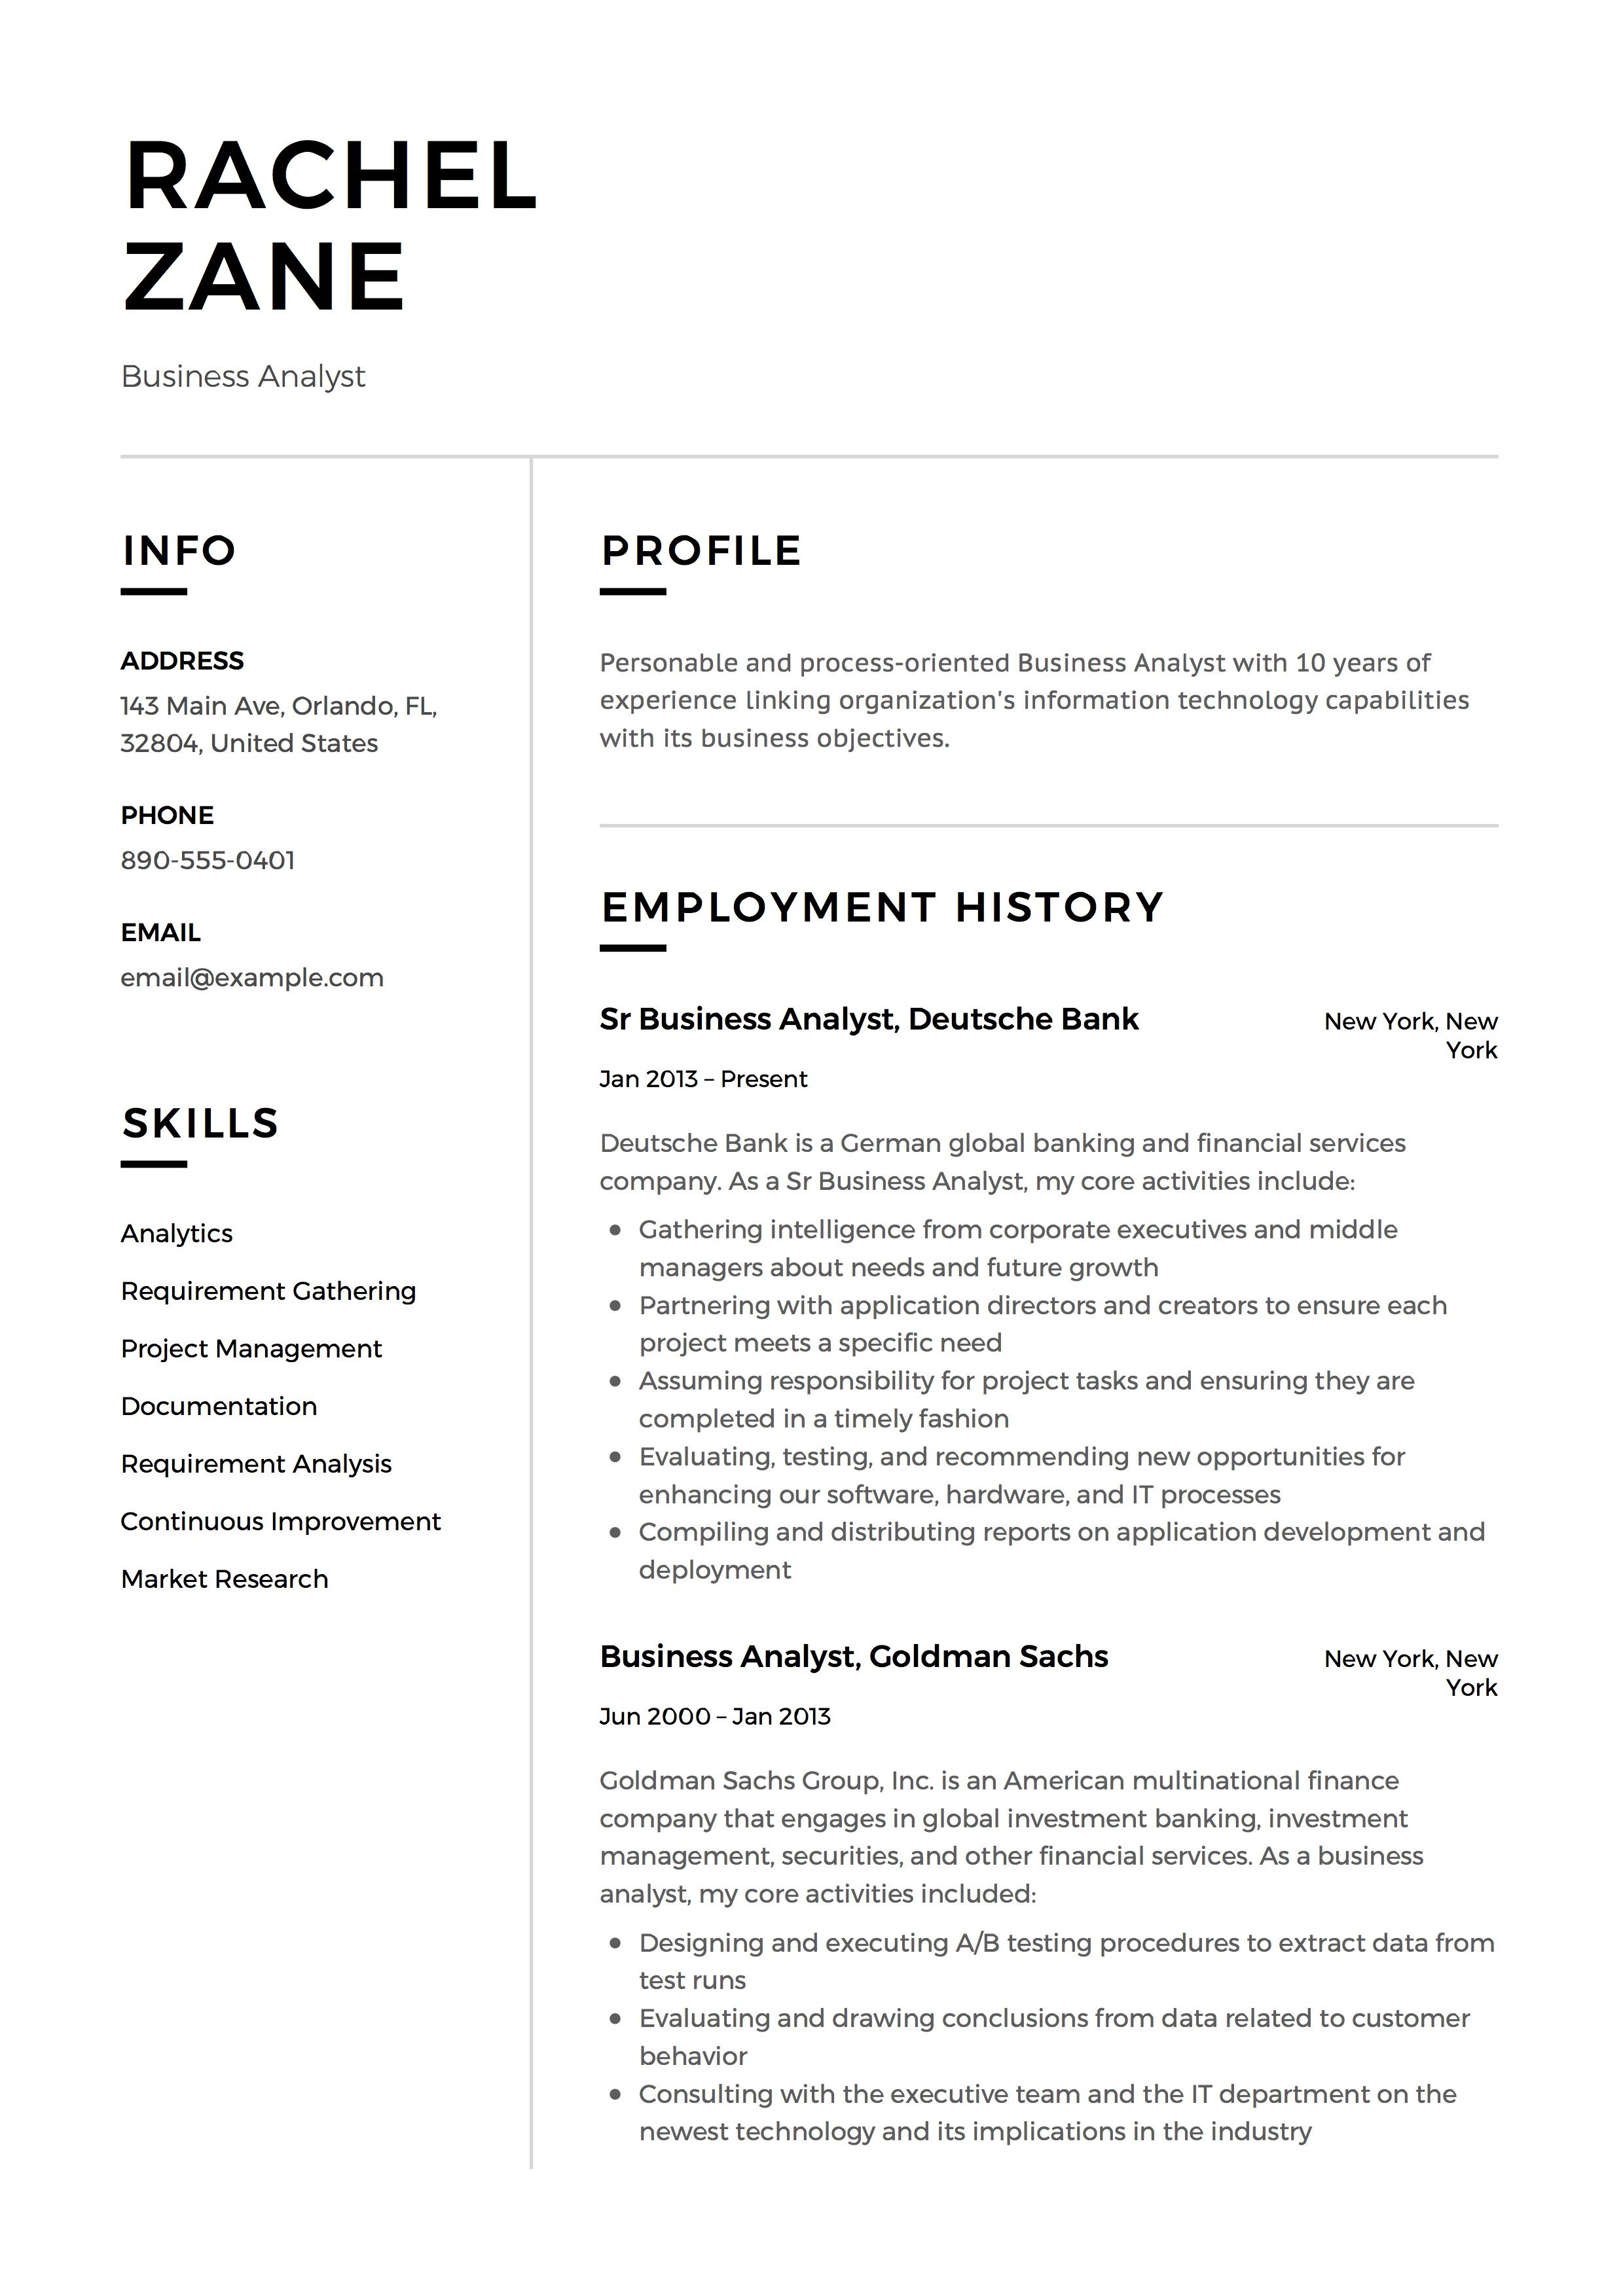 business analyst resume sample  template  example  cv  formal  design